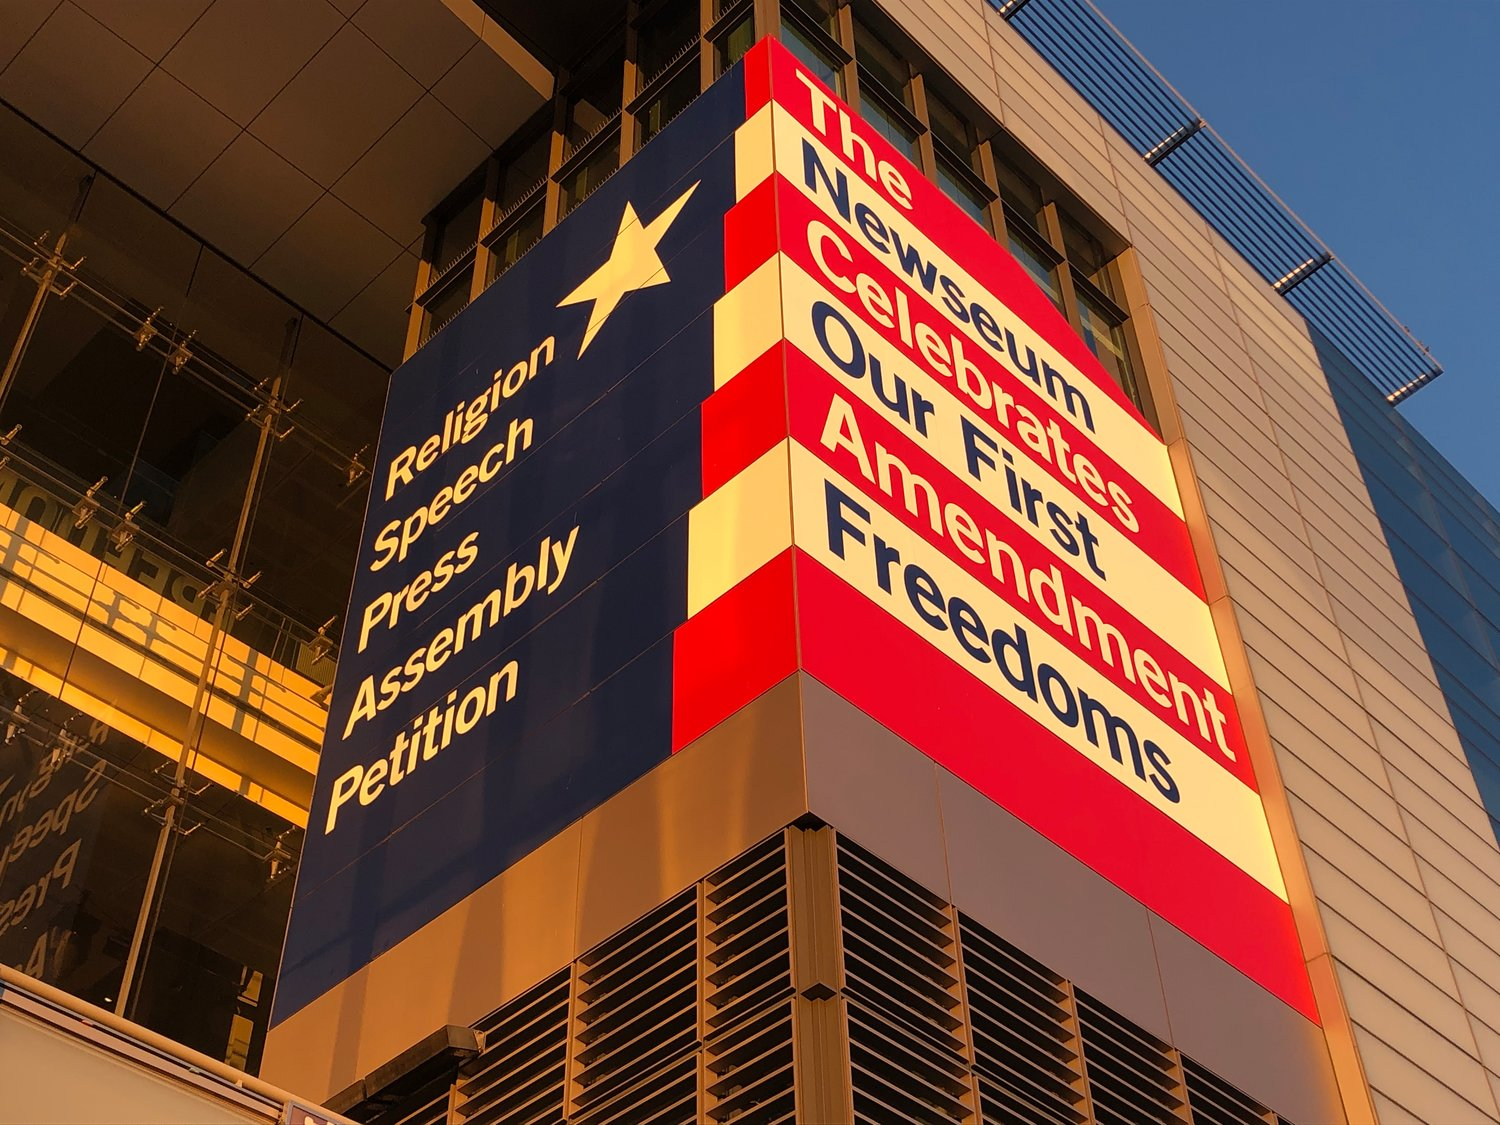 Panels on the façade of the Newseum remind the public of the five freedoms guaranteed by the First Amendment: religion, speech, press, assembly and petition.